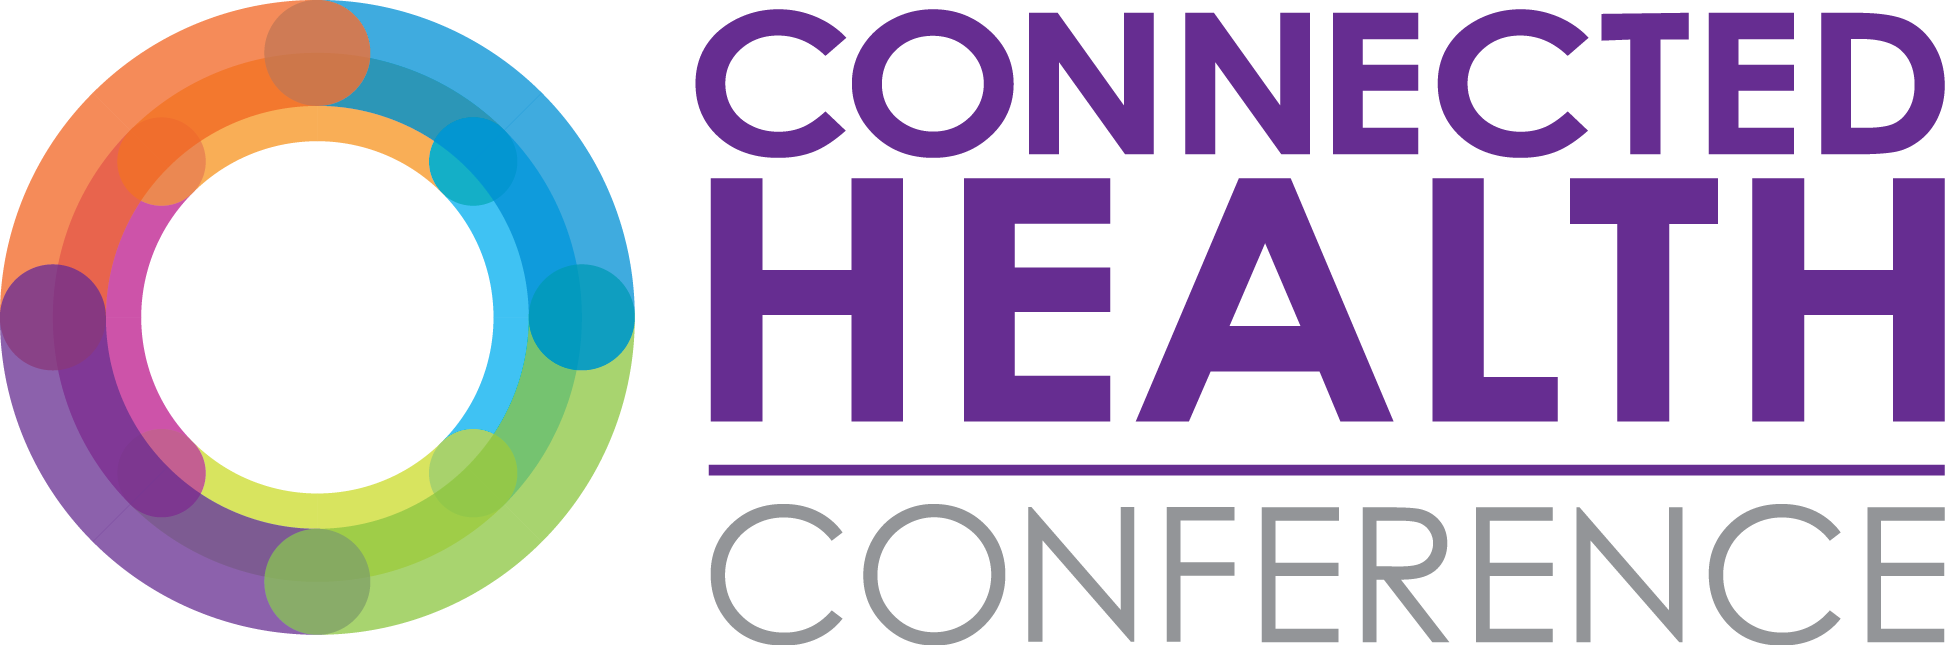 PCHA Connected Health Conference Logo